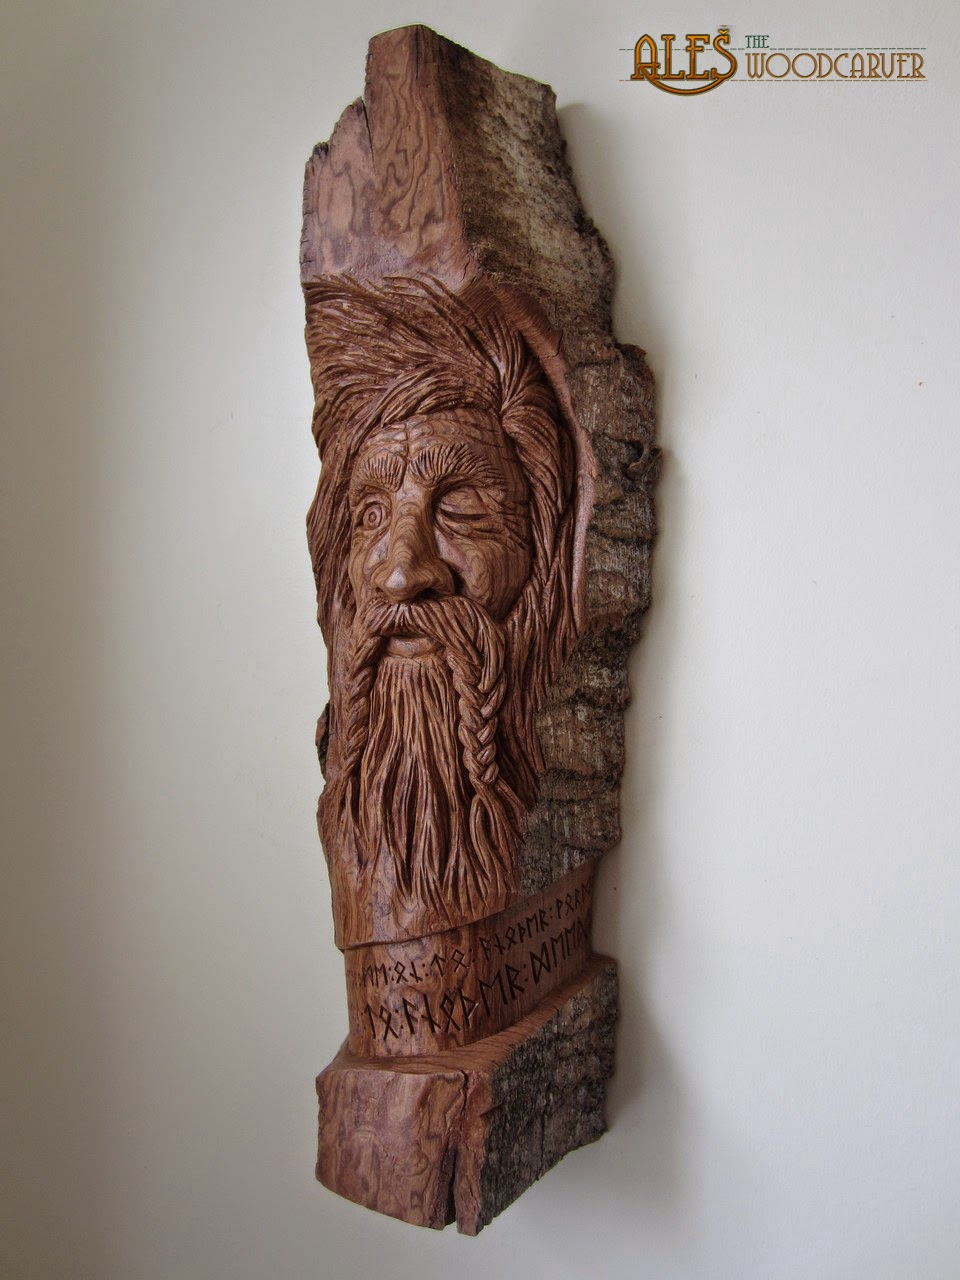 Ales the woodcarver odin wood spirit